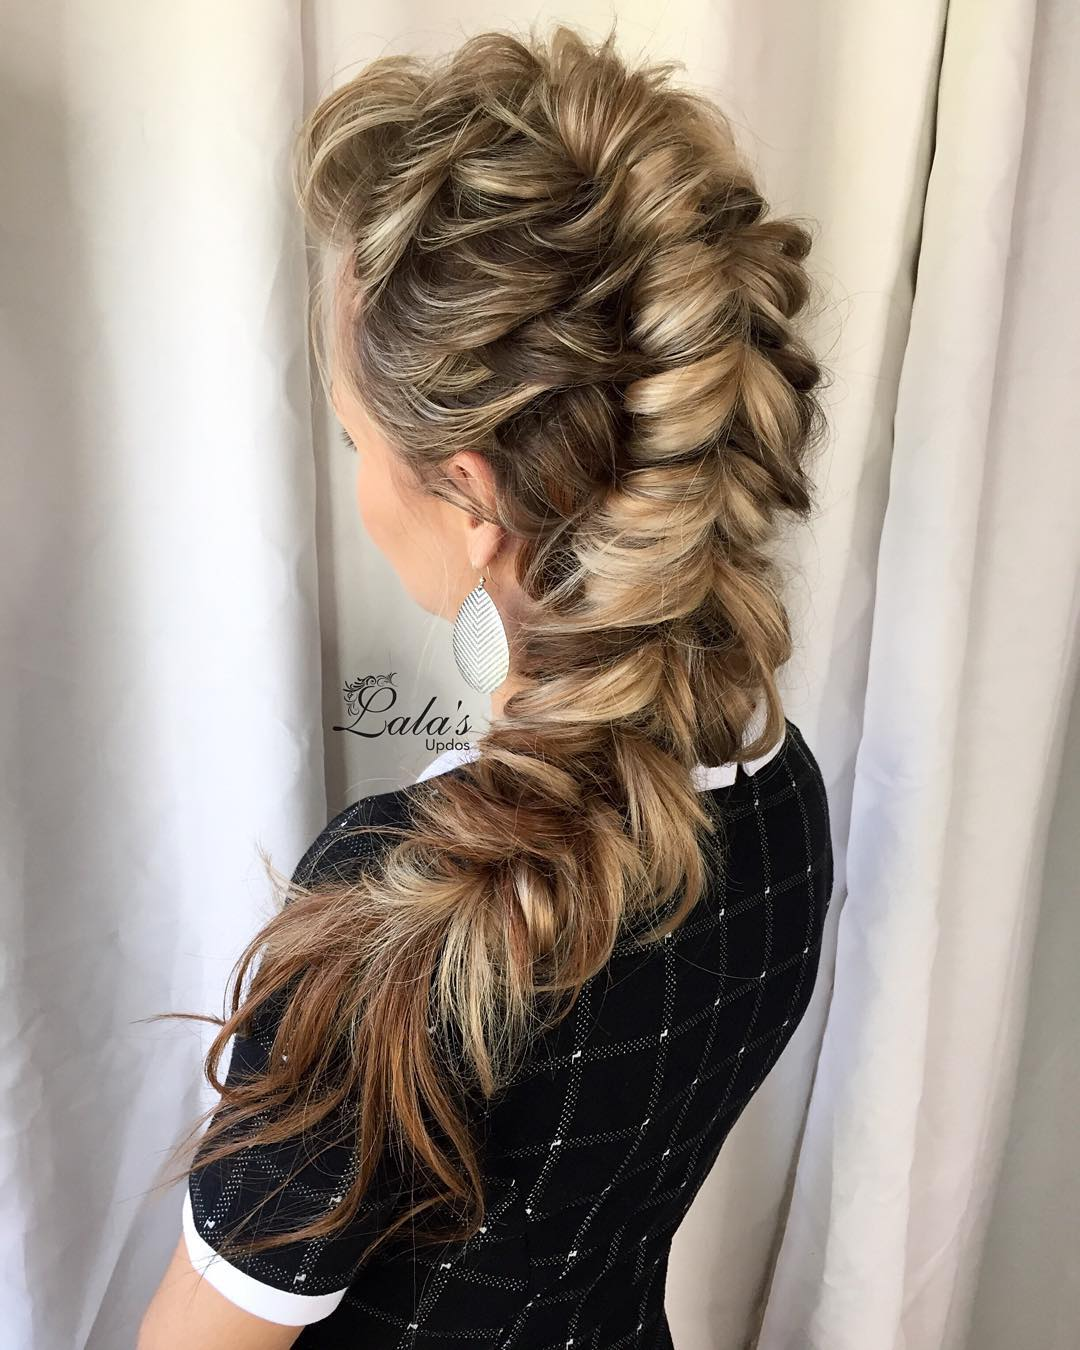 20 Ways To Style A Pull Through Braid 2018 Definitive Guide